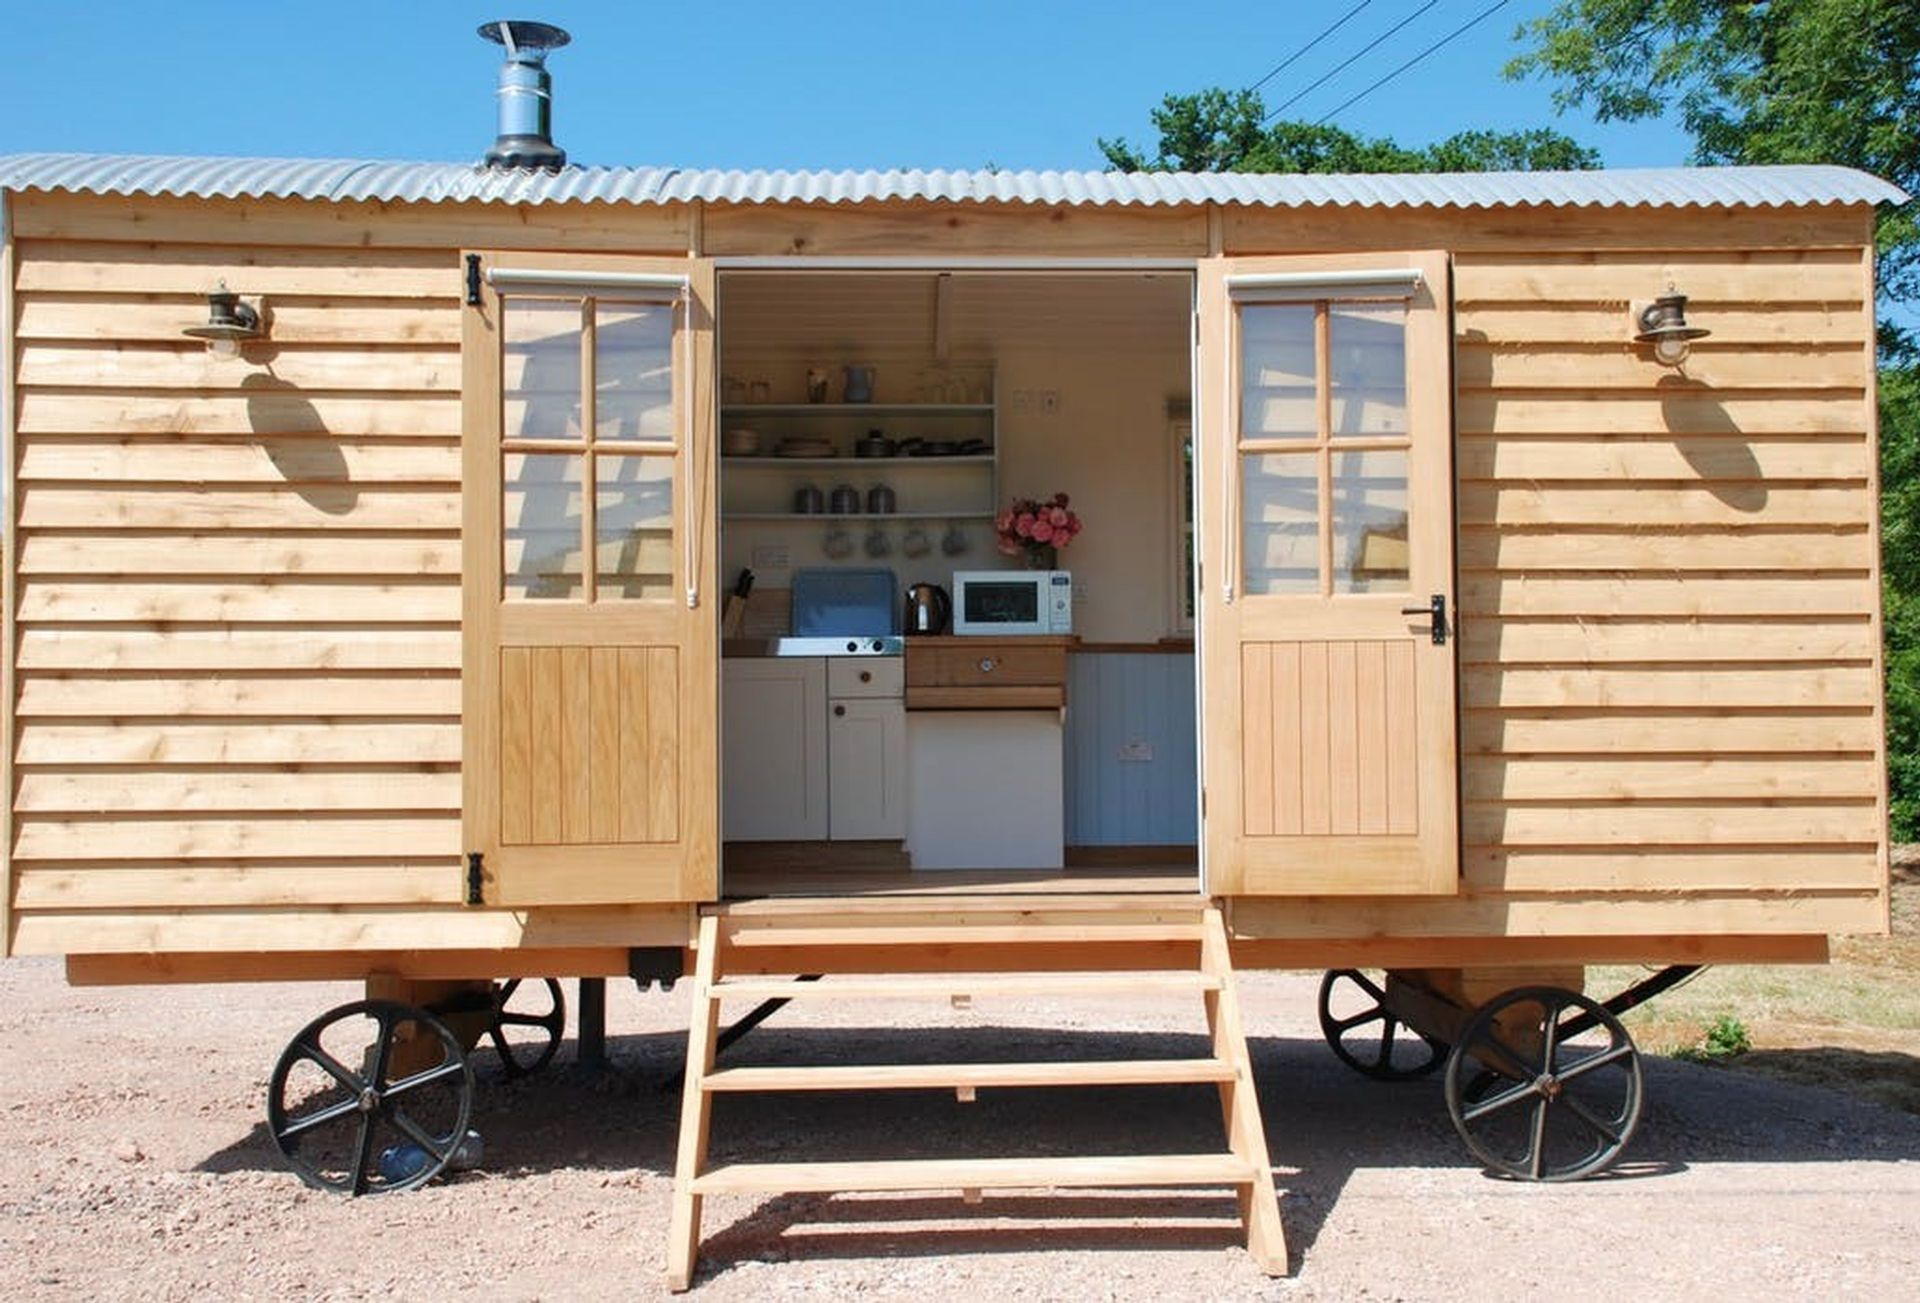 Click here for more about Apple the shepherd's hut